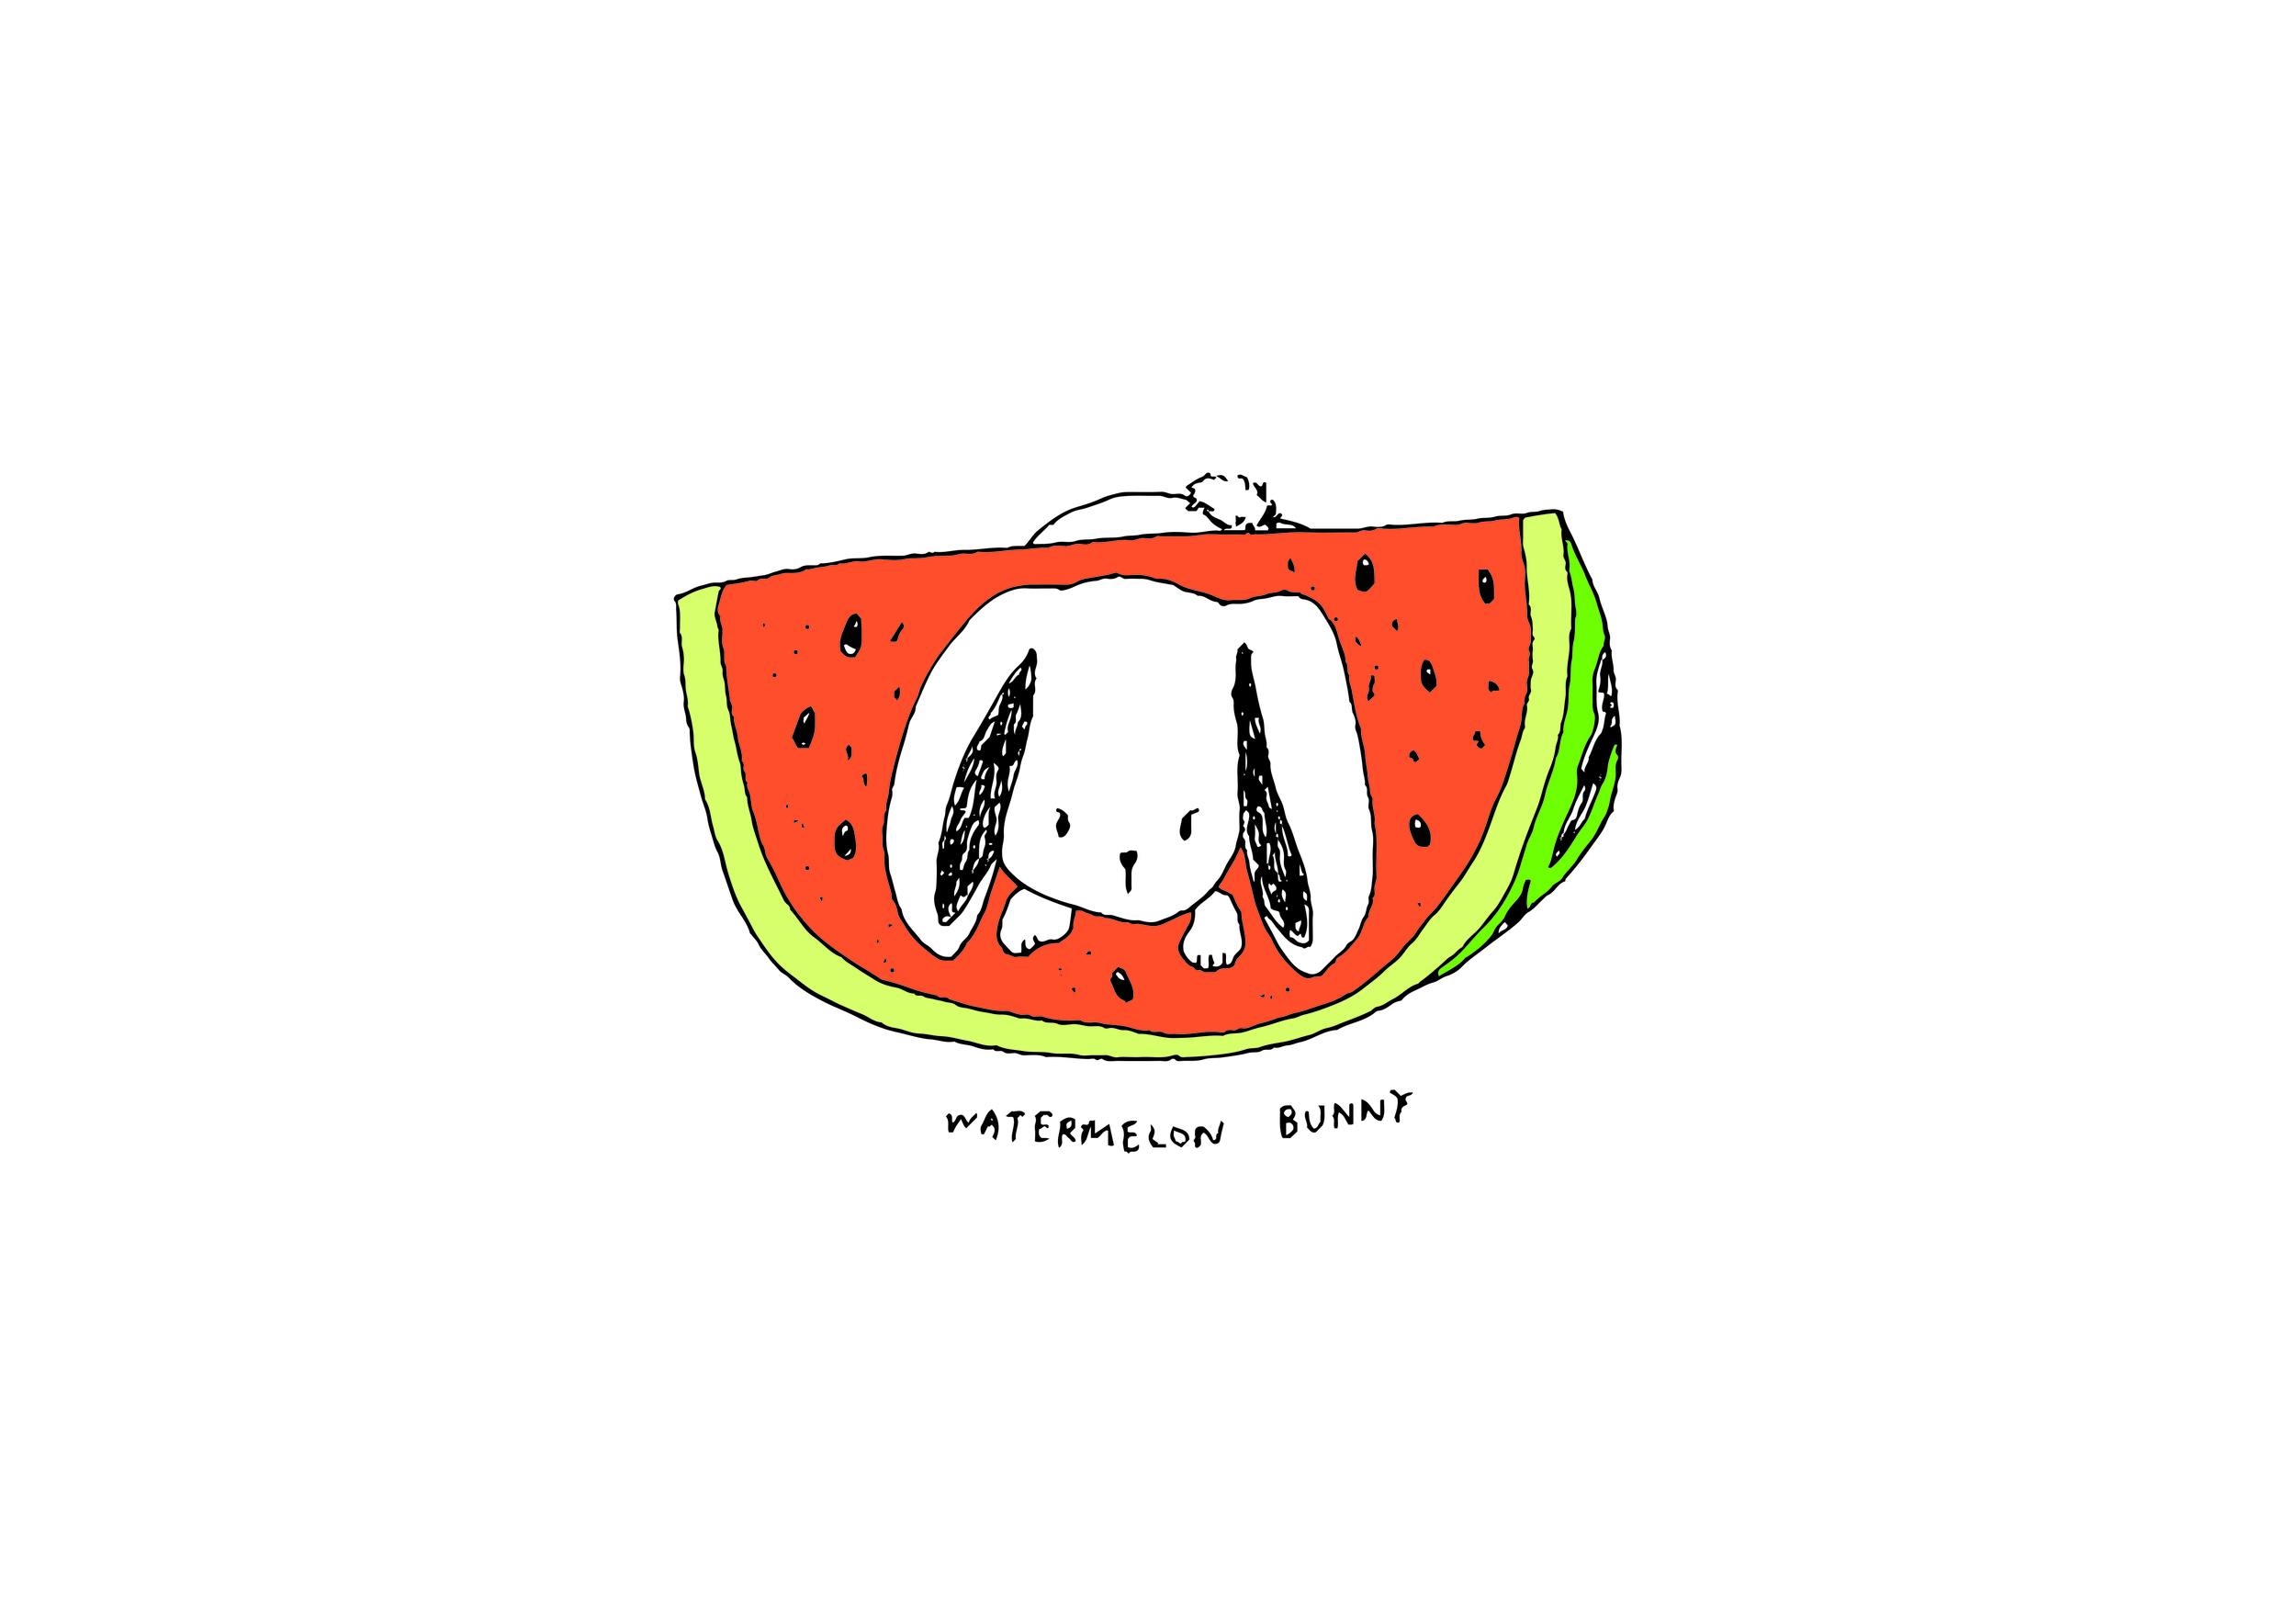 Watermelon Bunny